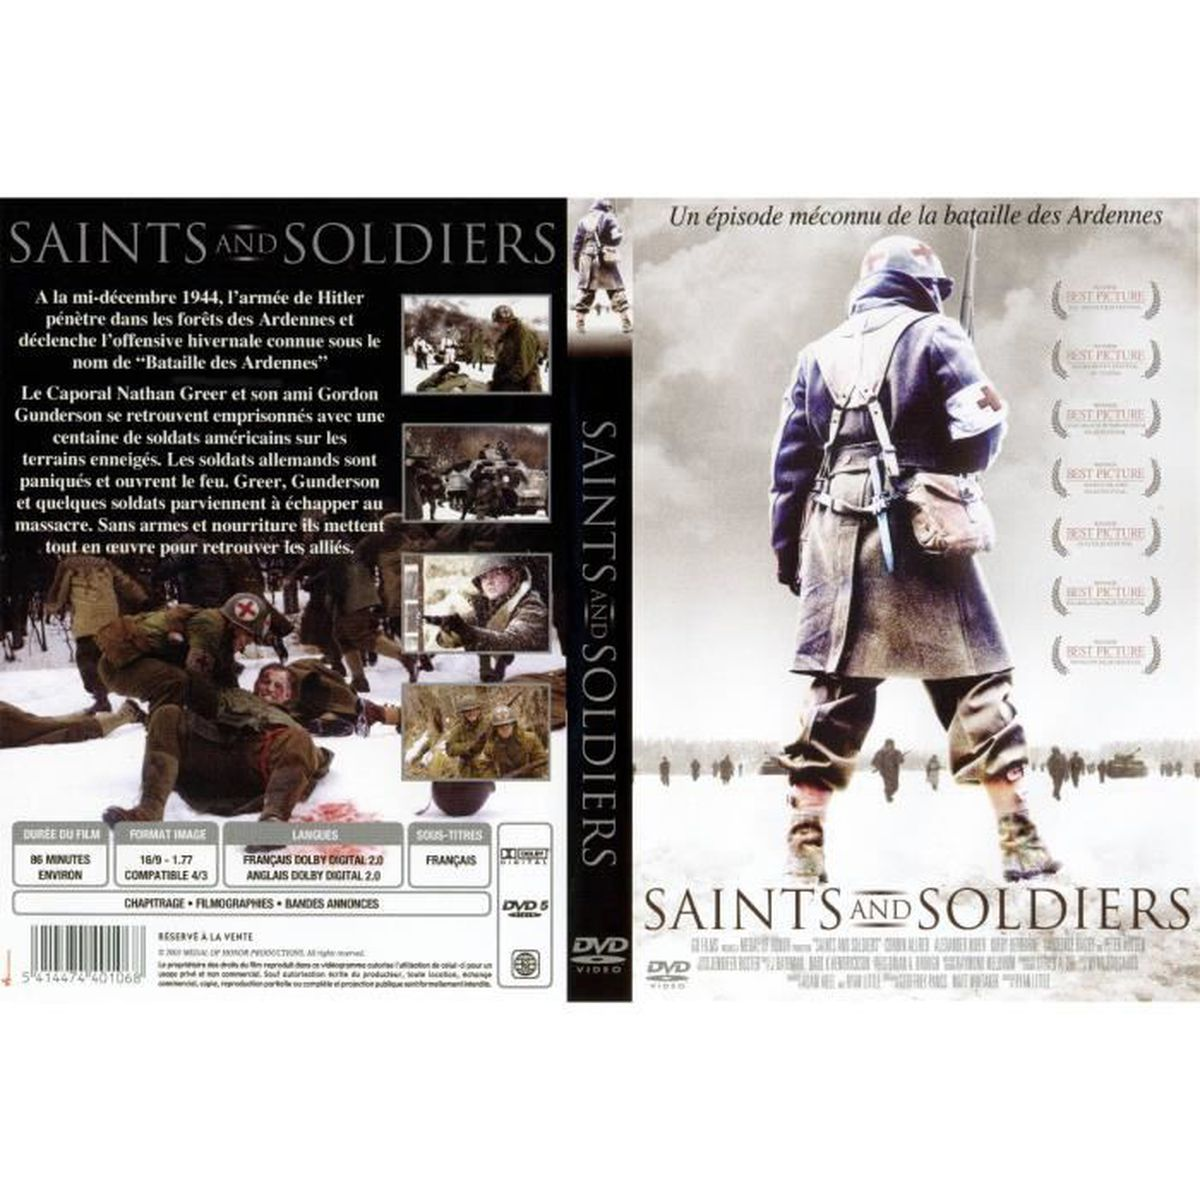 DVD FILM SAINTS AND SOLDIERS